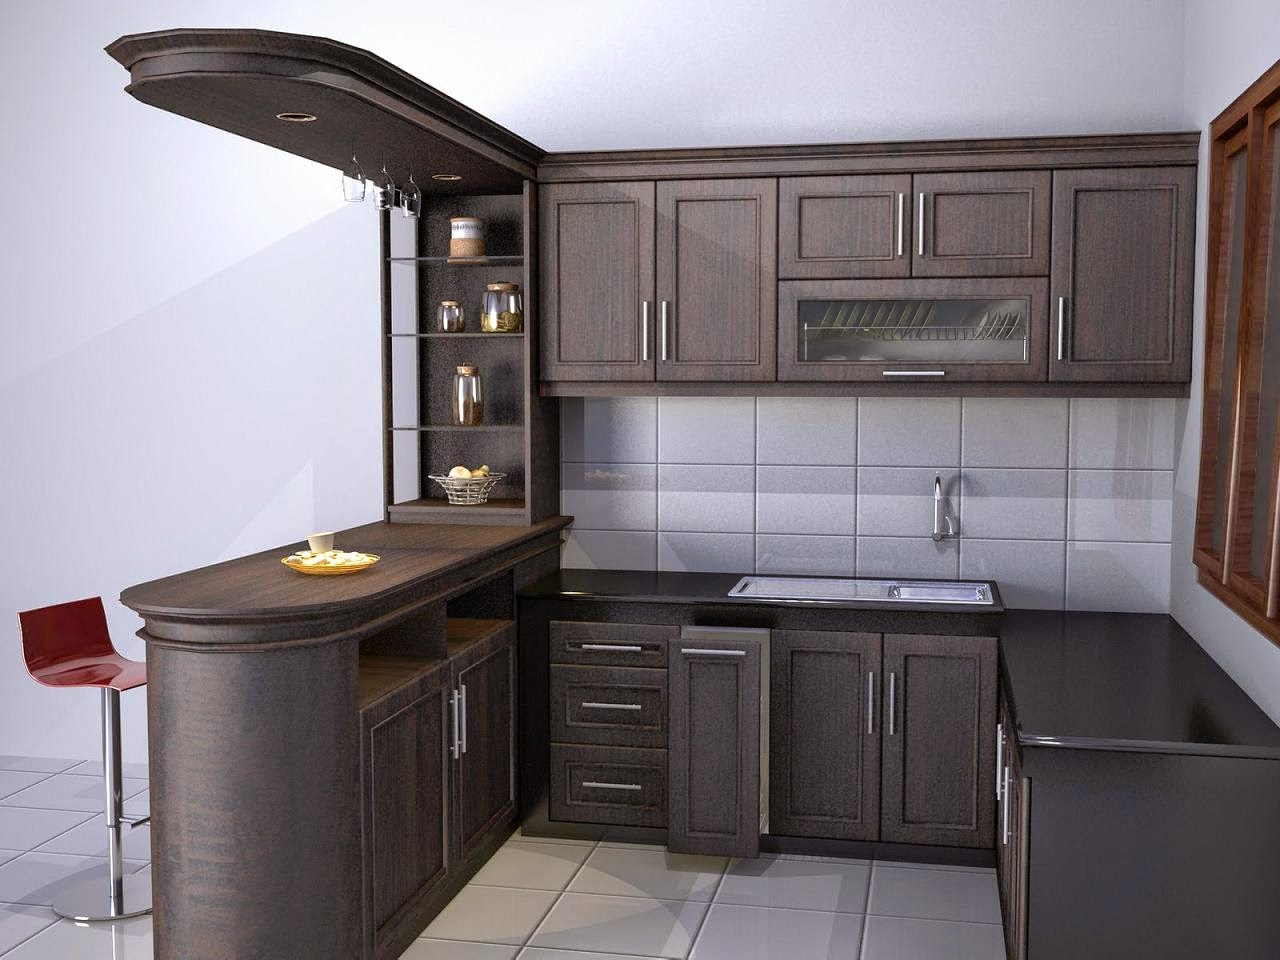 Teak Wood Kitchen Cabinets Teak Wood Kitchen Cabinets Material Home Decorating Plans Ideas